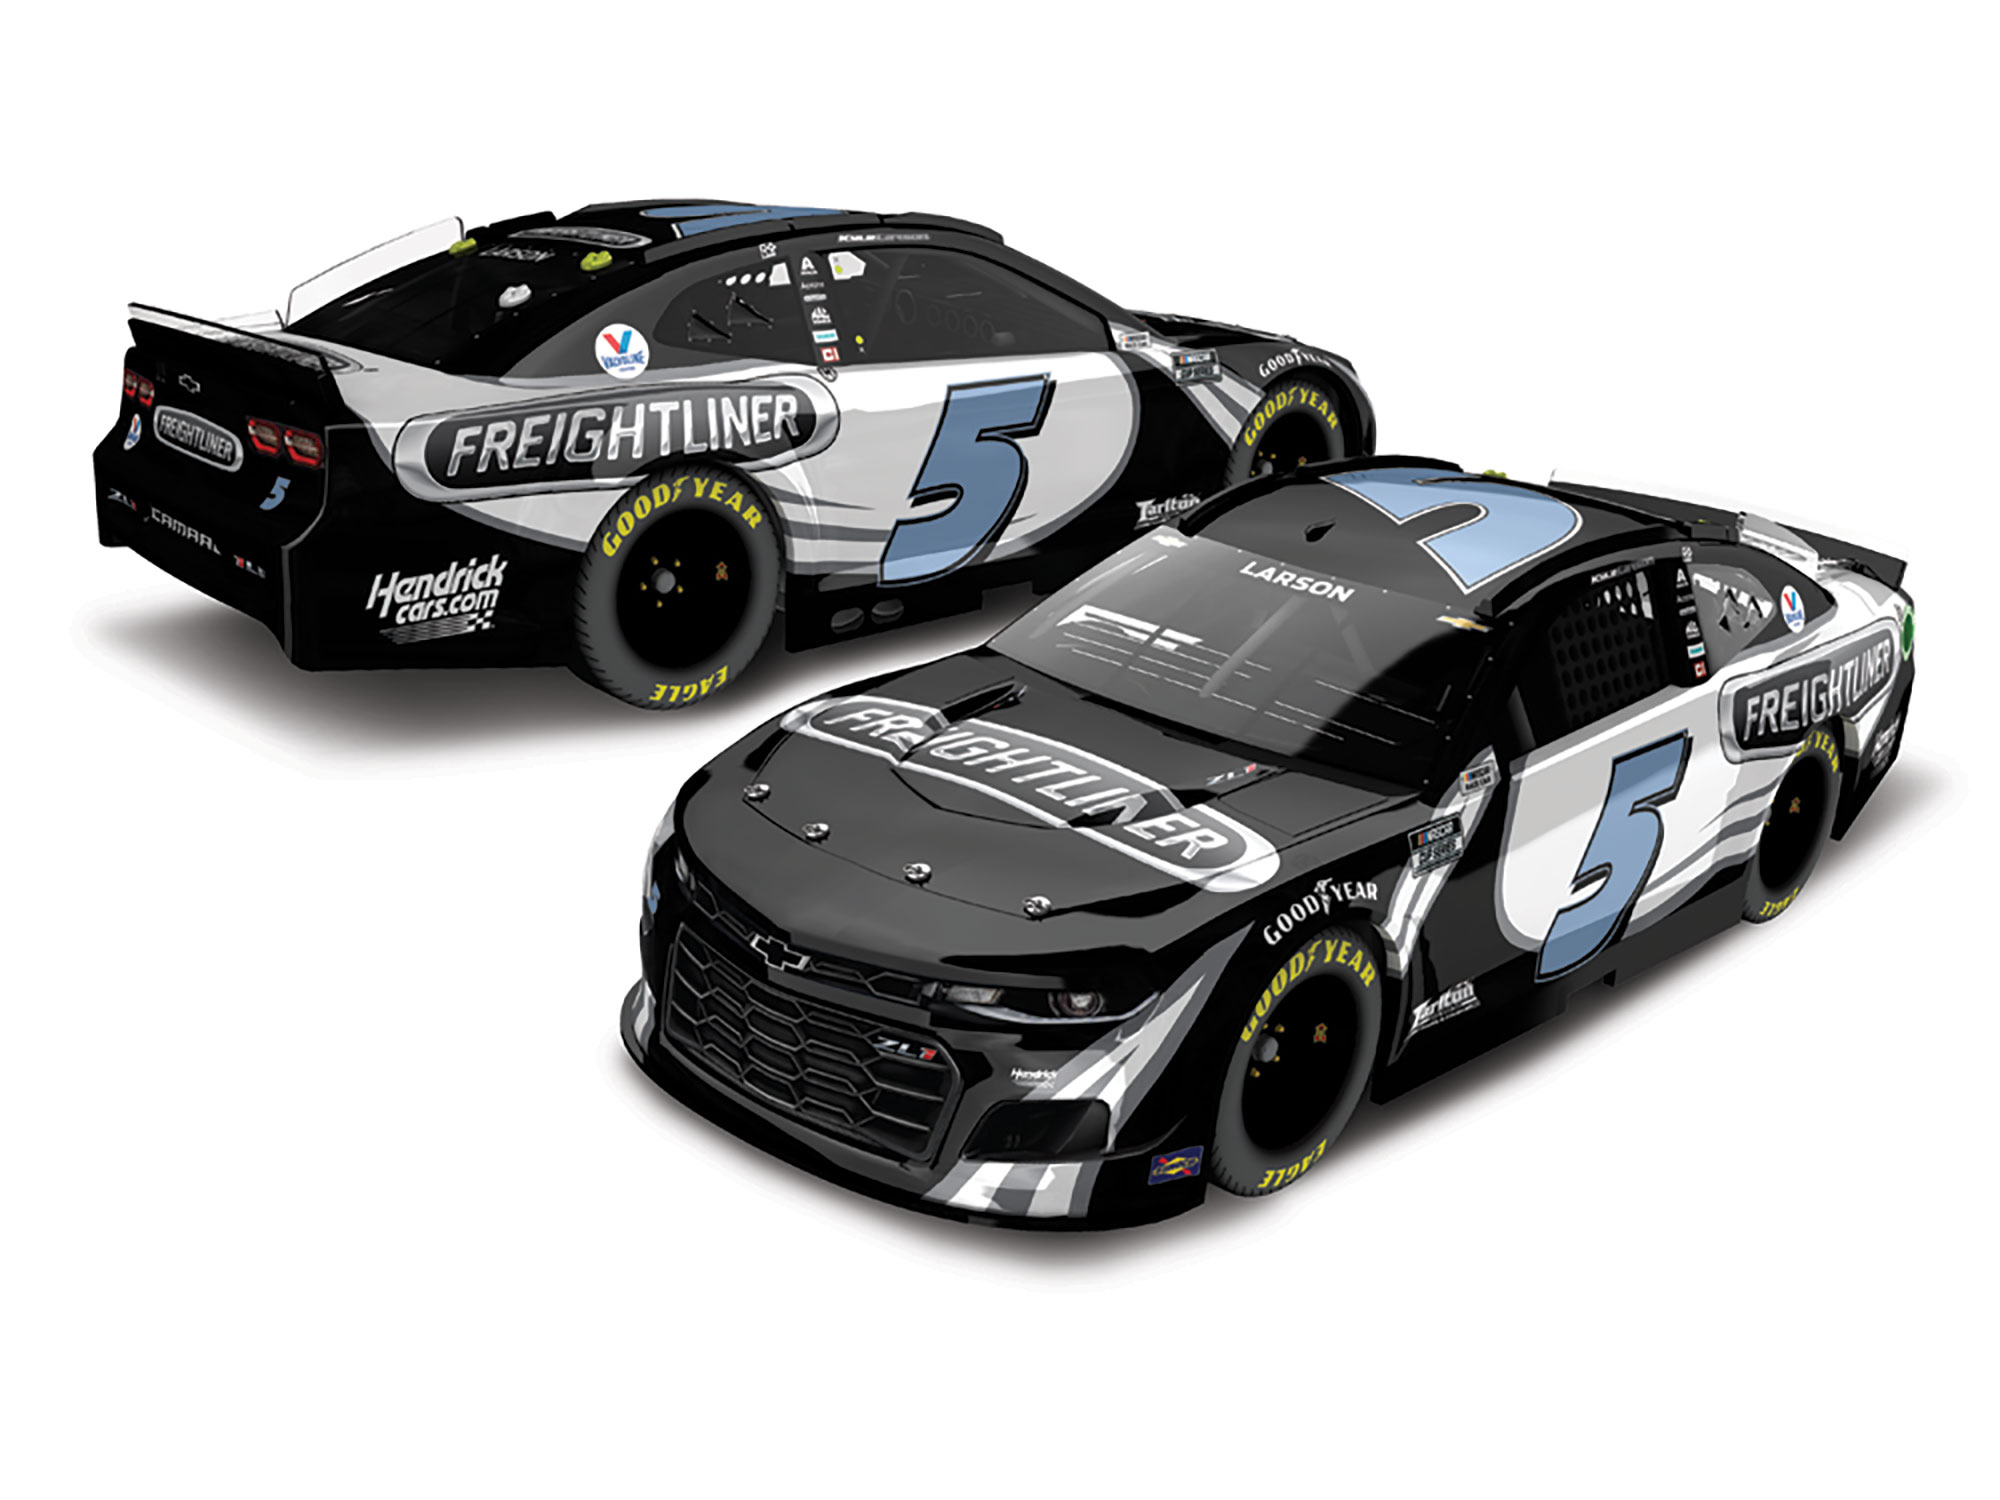 2021 Kyle Larson #5 Freightliner 1:24 Color Chrome Nascar Diecast Car.